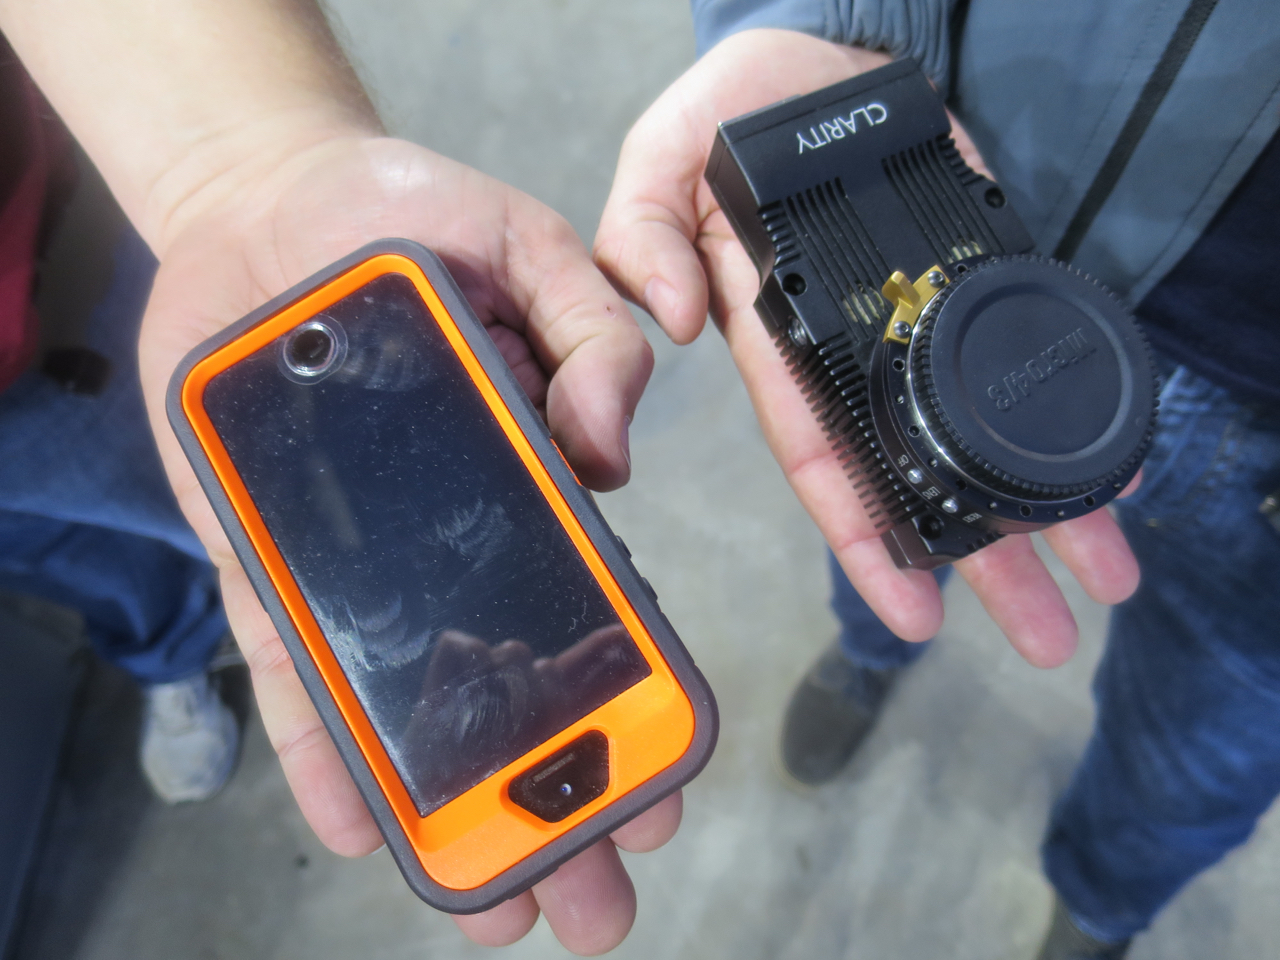 The Clarity 800 camera has a similar footprint to a smartphone.